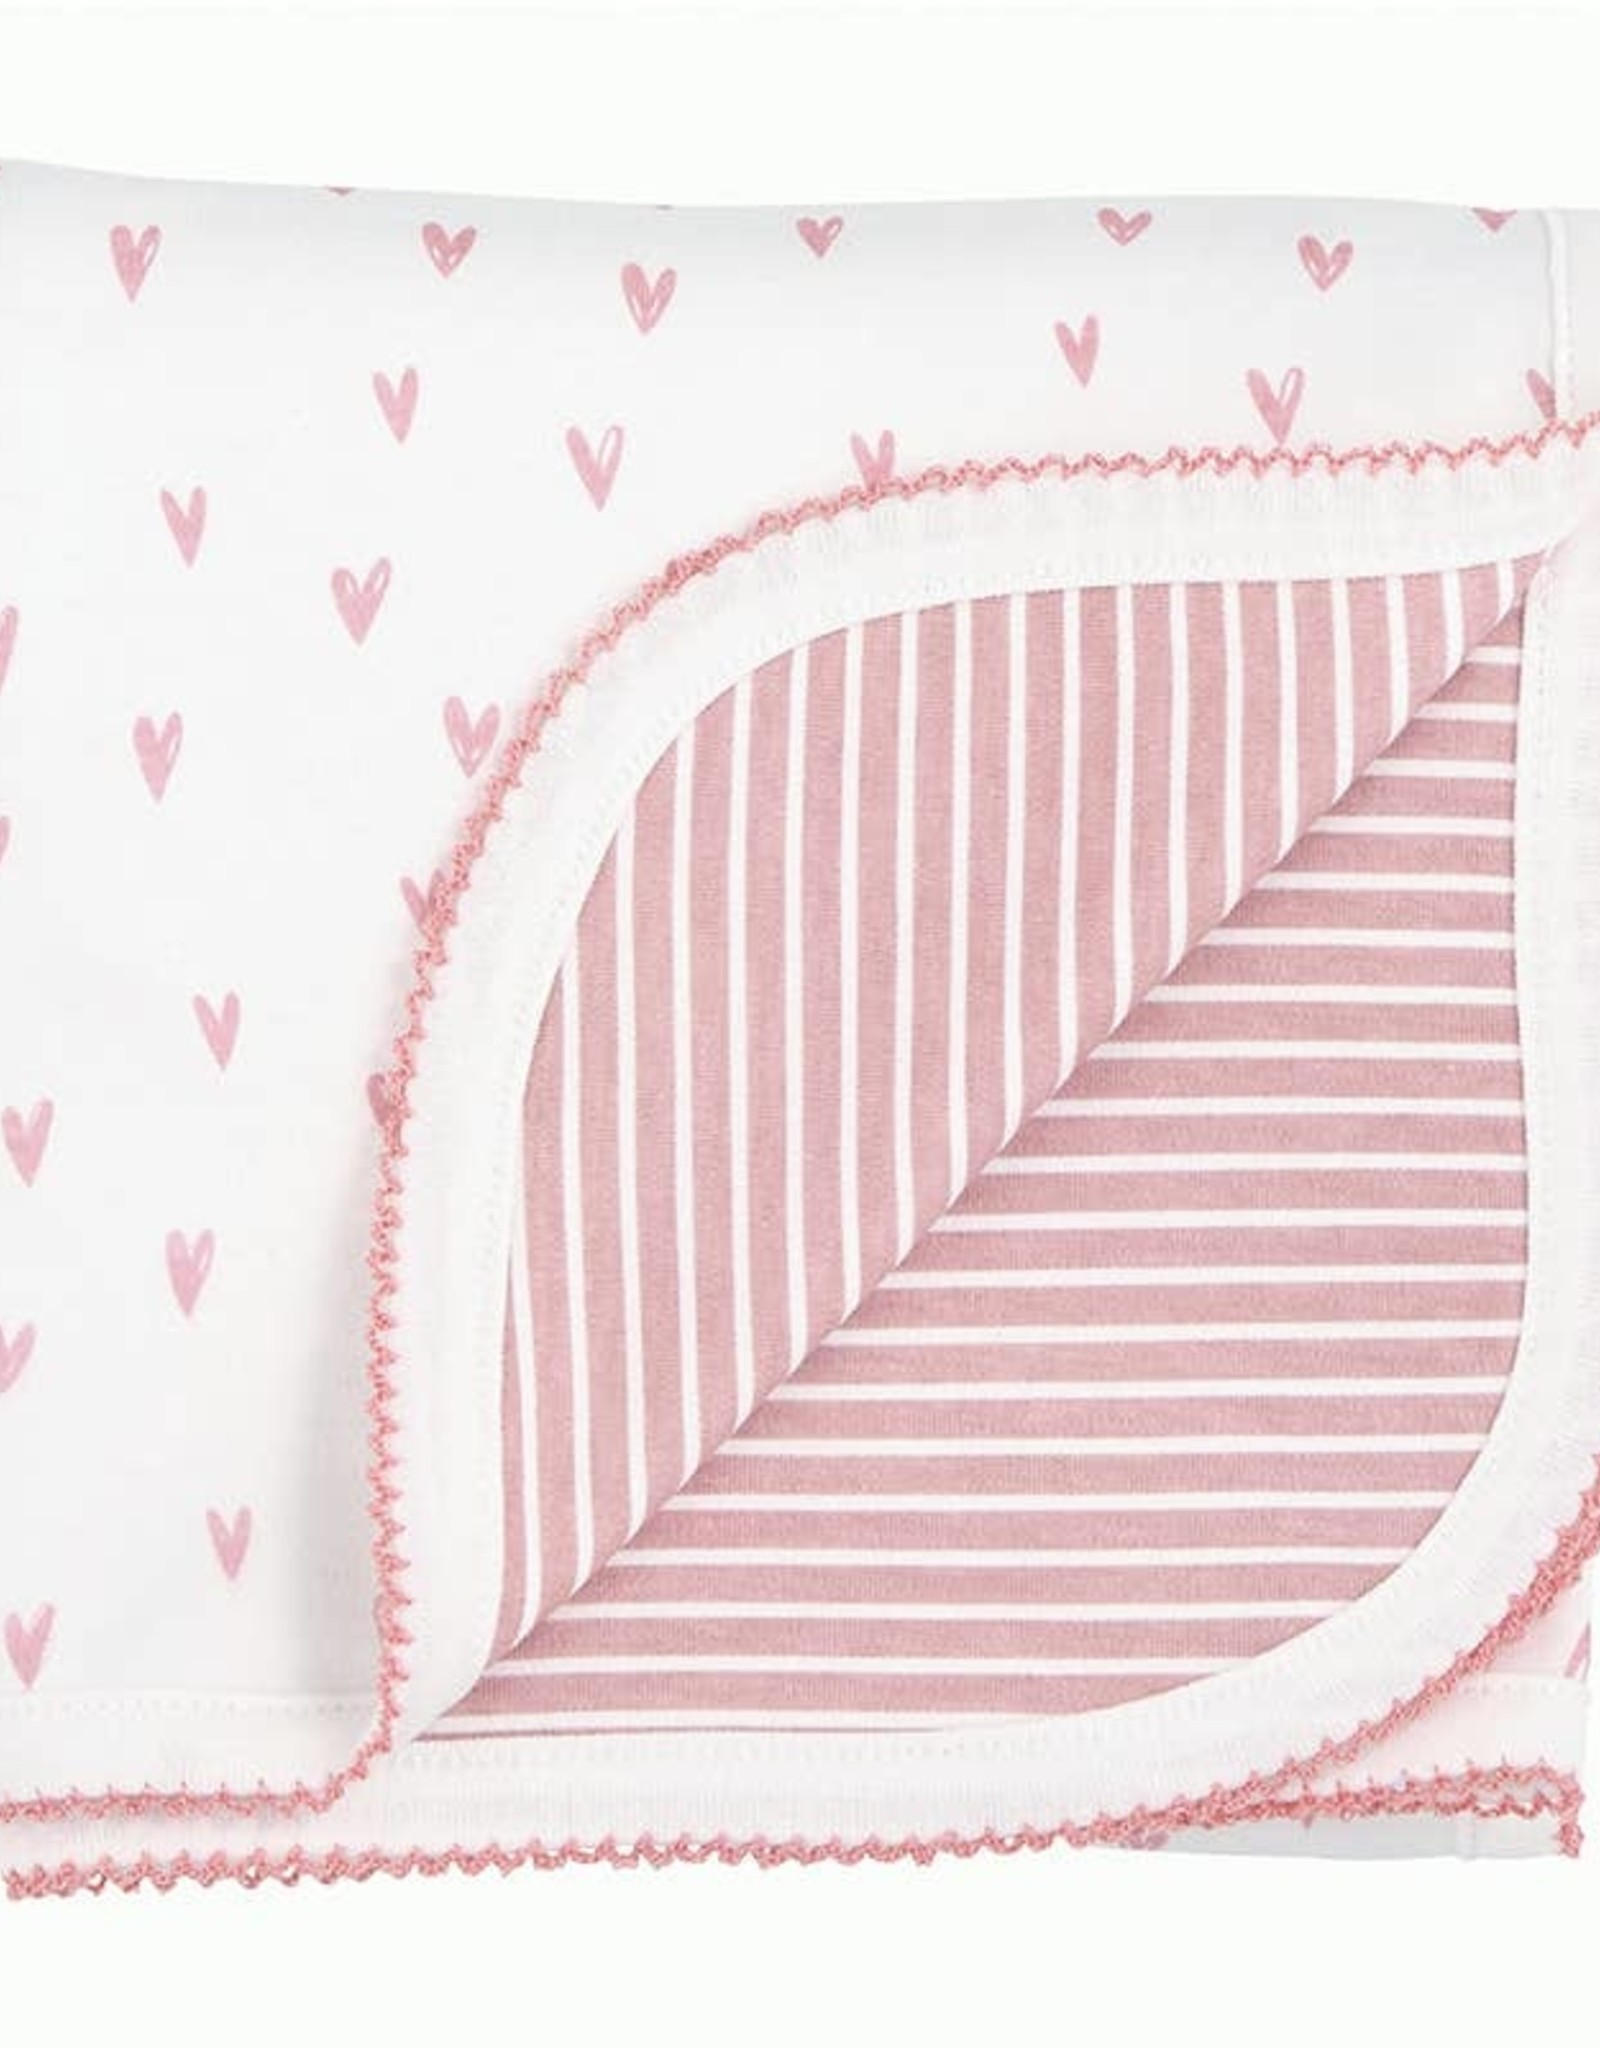 Wink Pink Hearts Blanket - Reversible